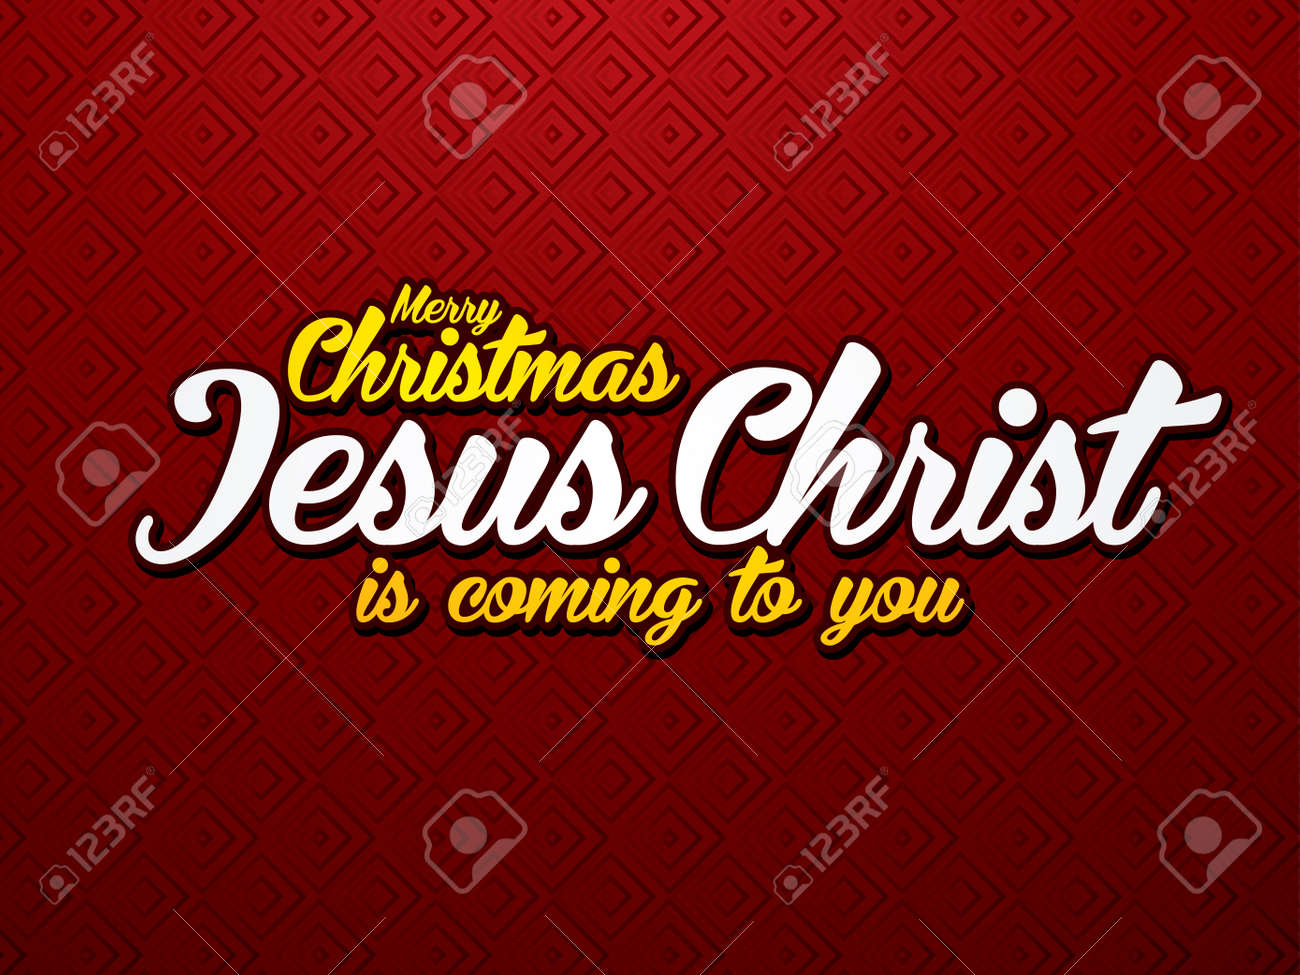 Merry Christmas Jesus Christ Is Coming To You. Font Designed ...